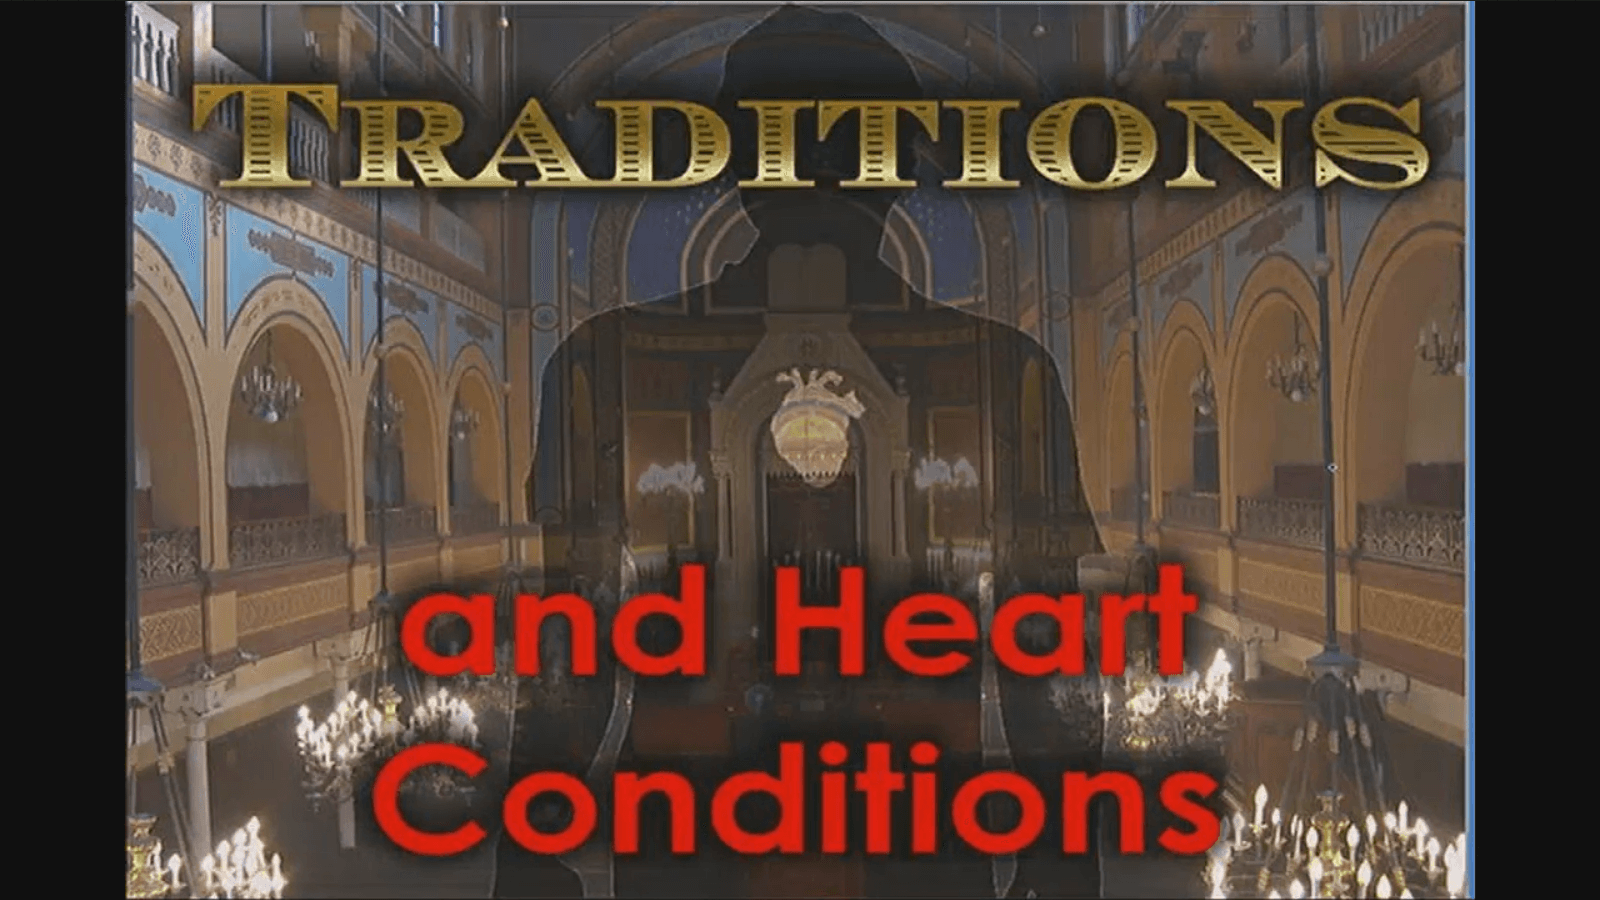 Traditions and Heart Conditions